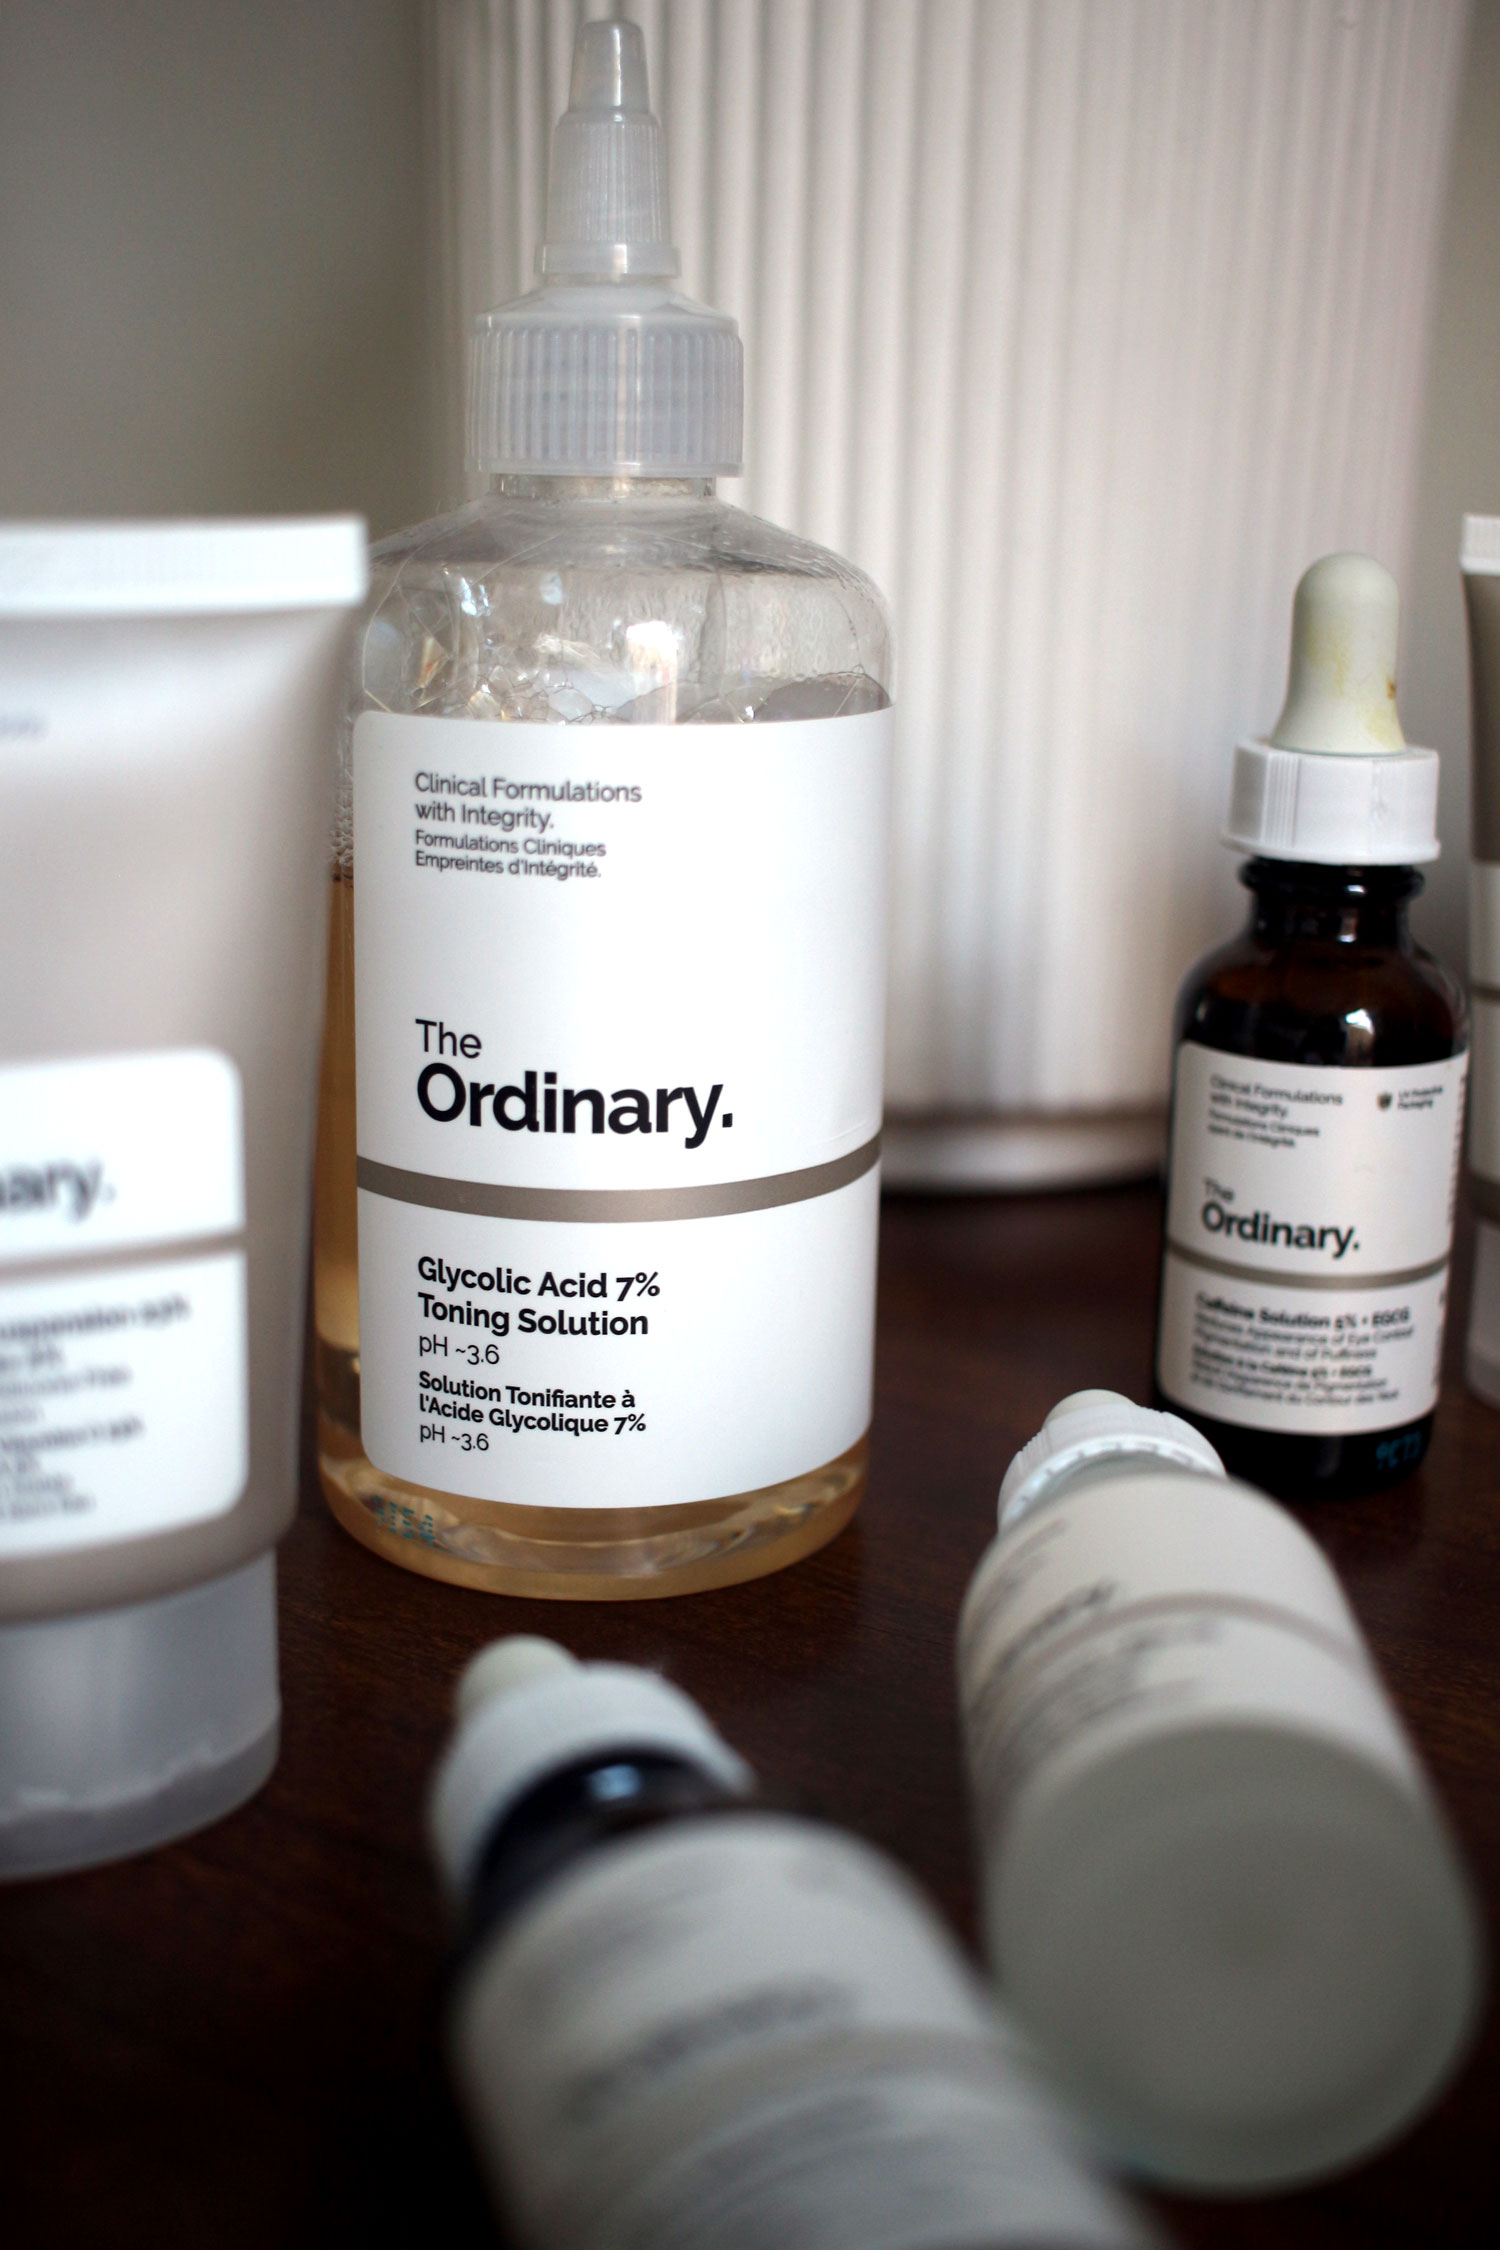 The-Ordinary-skincare-overview-beauty-review-1